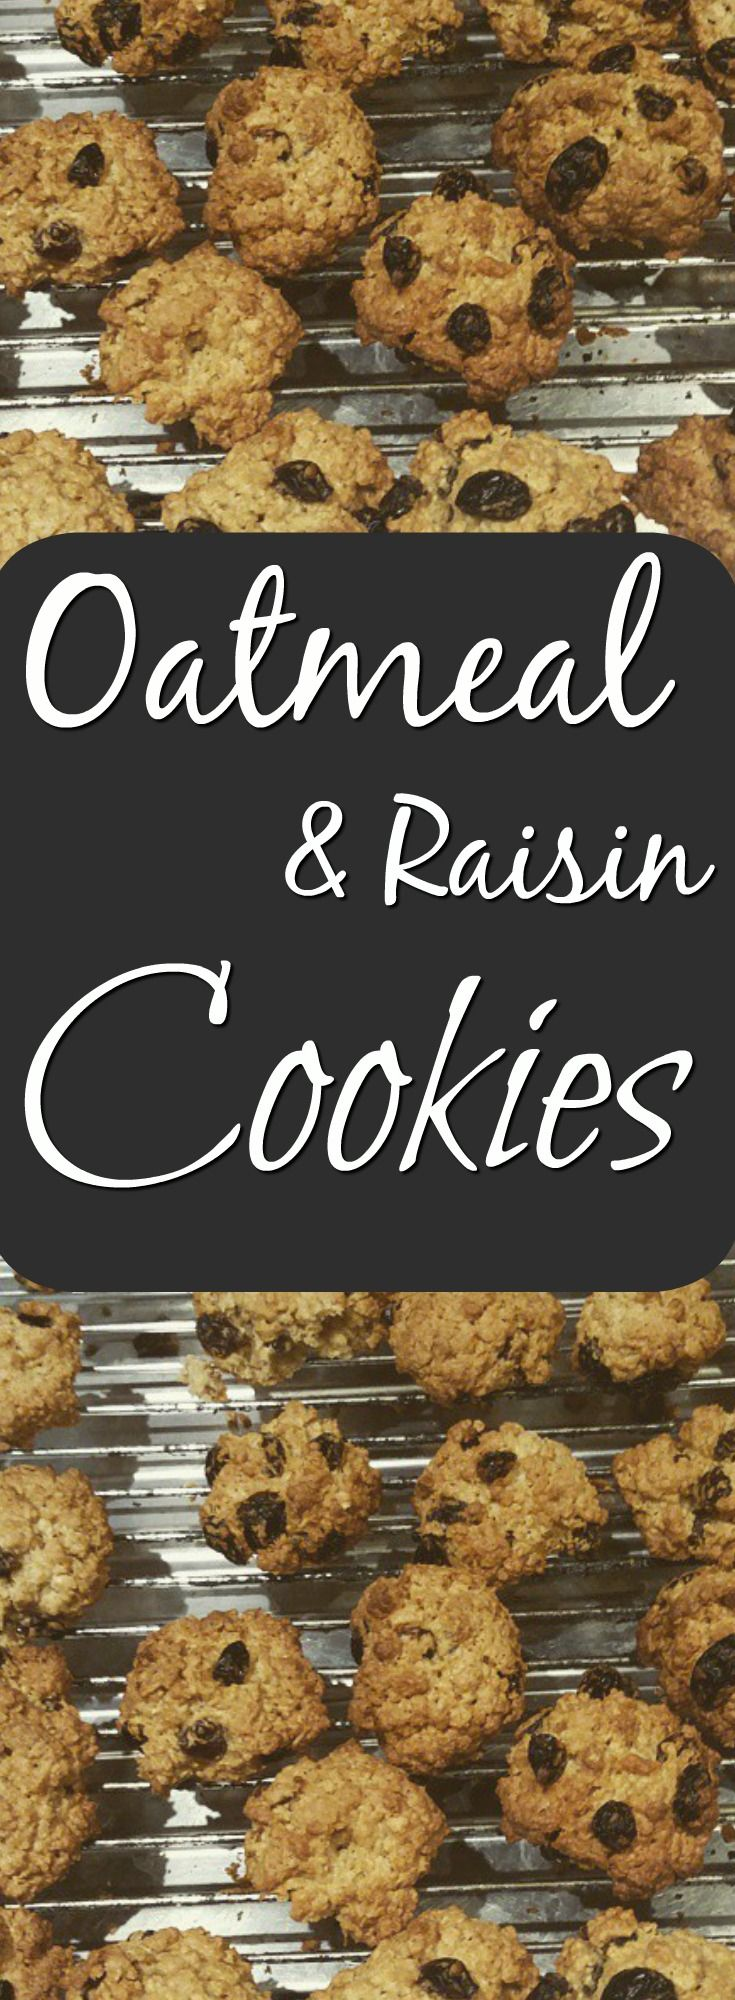 Very tasty oatmeal and raisin cookies that are full of energy, filling and taste perfect for everyone on the go! Time to fill up the biscuit tin!